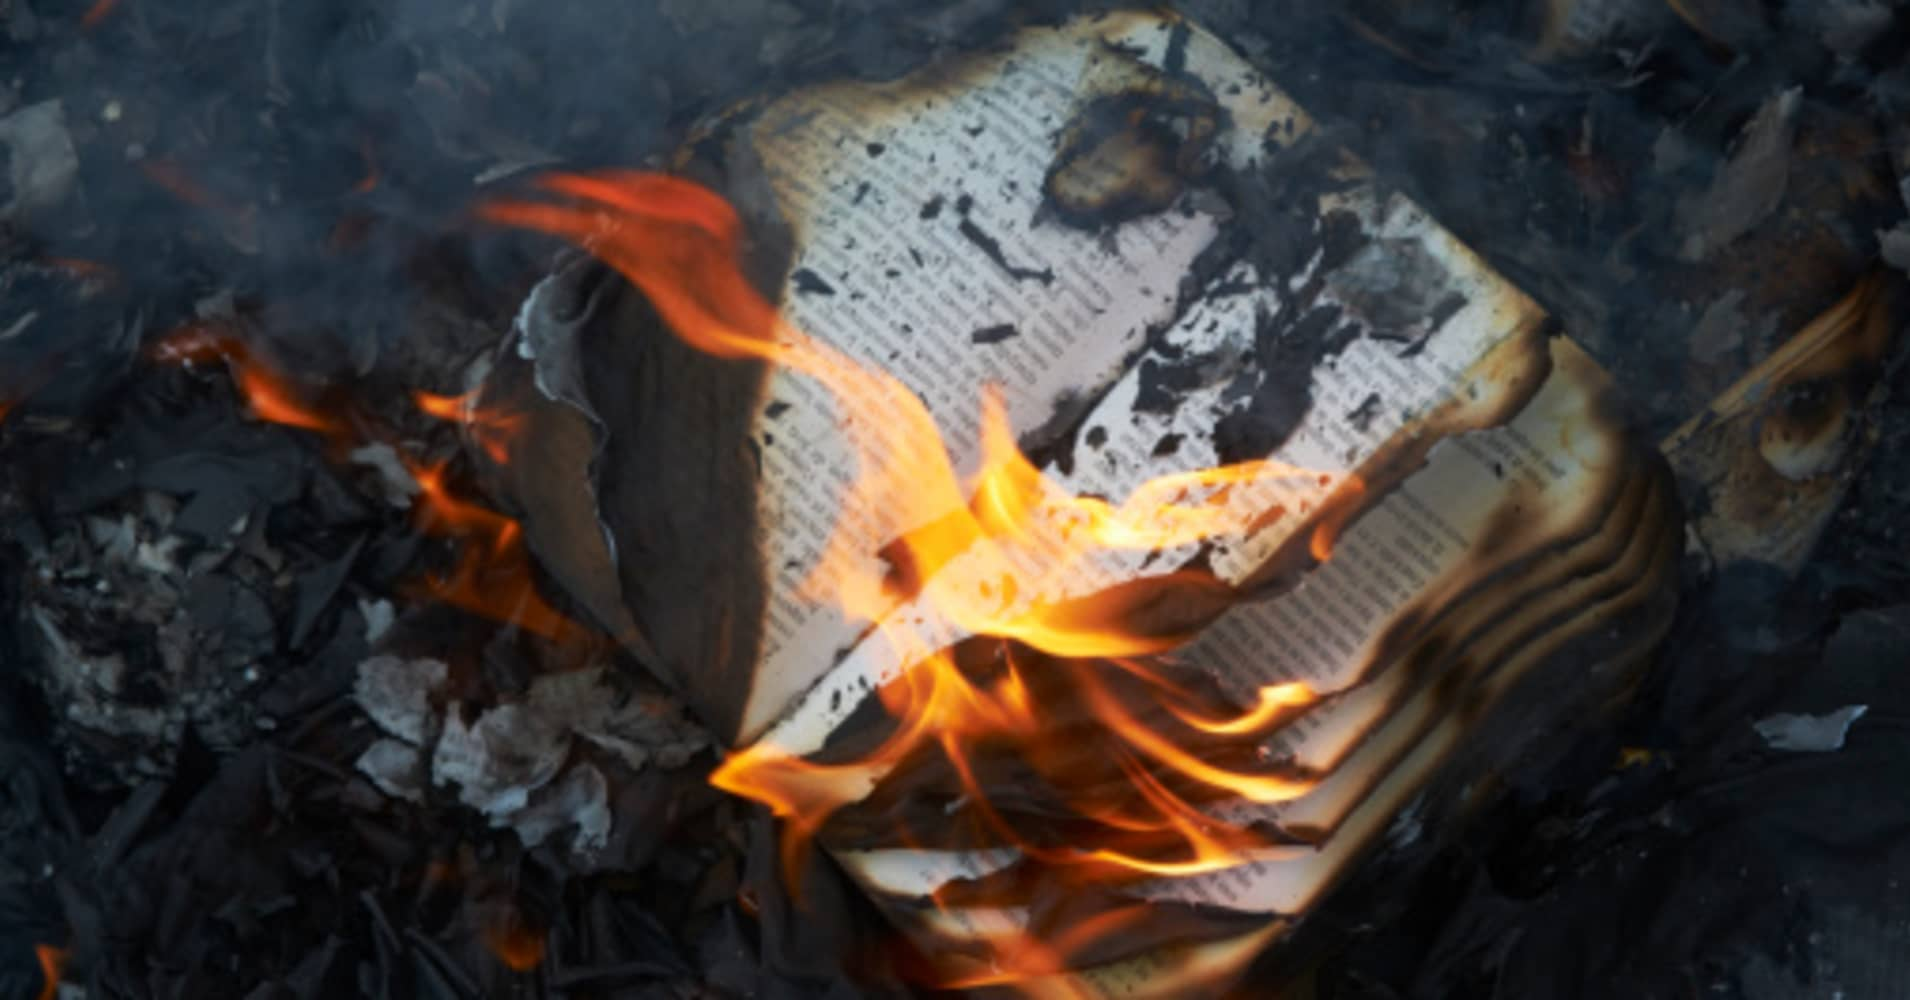 an analysis of book burning Summary & analysis the hearth and the salamander the hearth and the salamander this passage from the hearth and the salamander refers to montag's theft of books from the old woman's house burn it take the shot from the weapon breach man's mind.